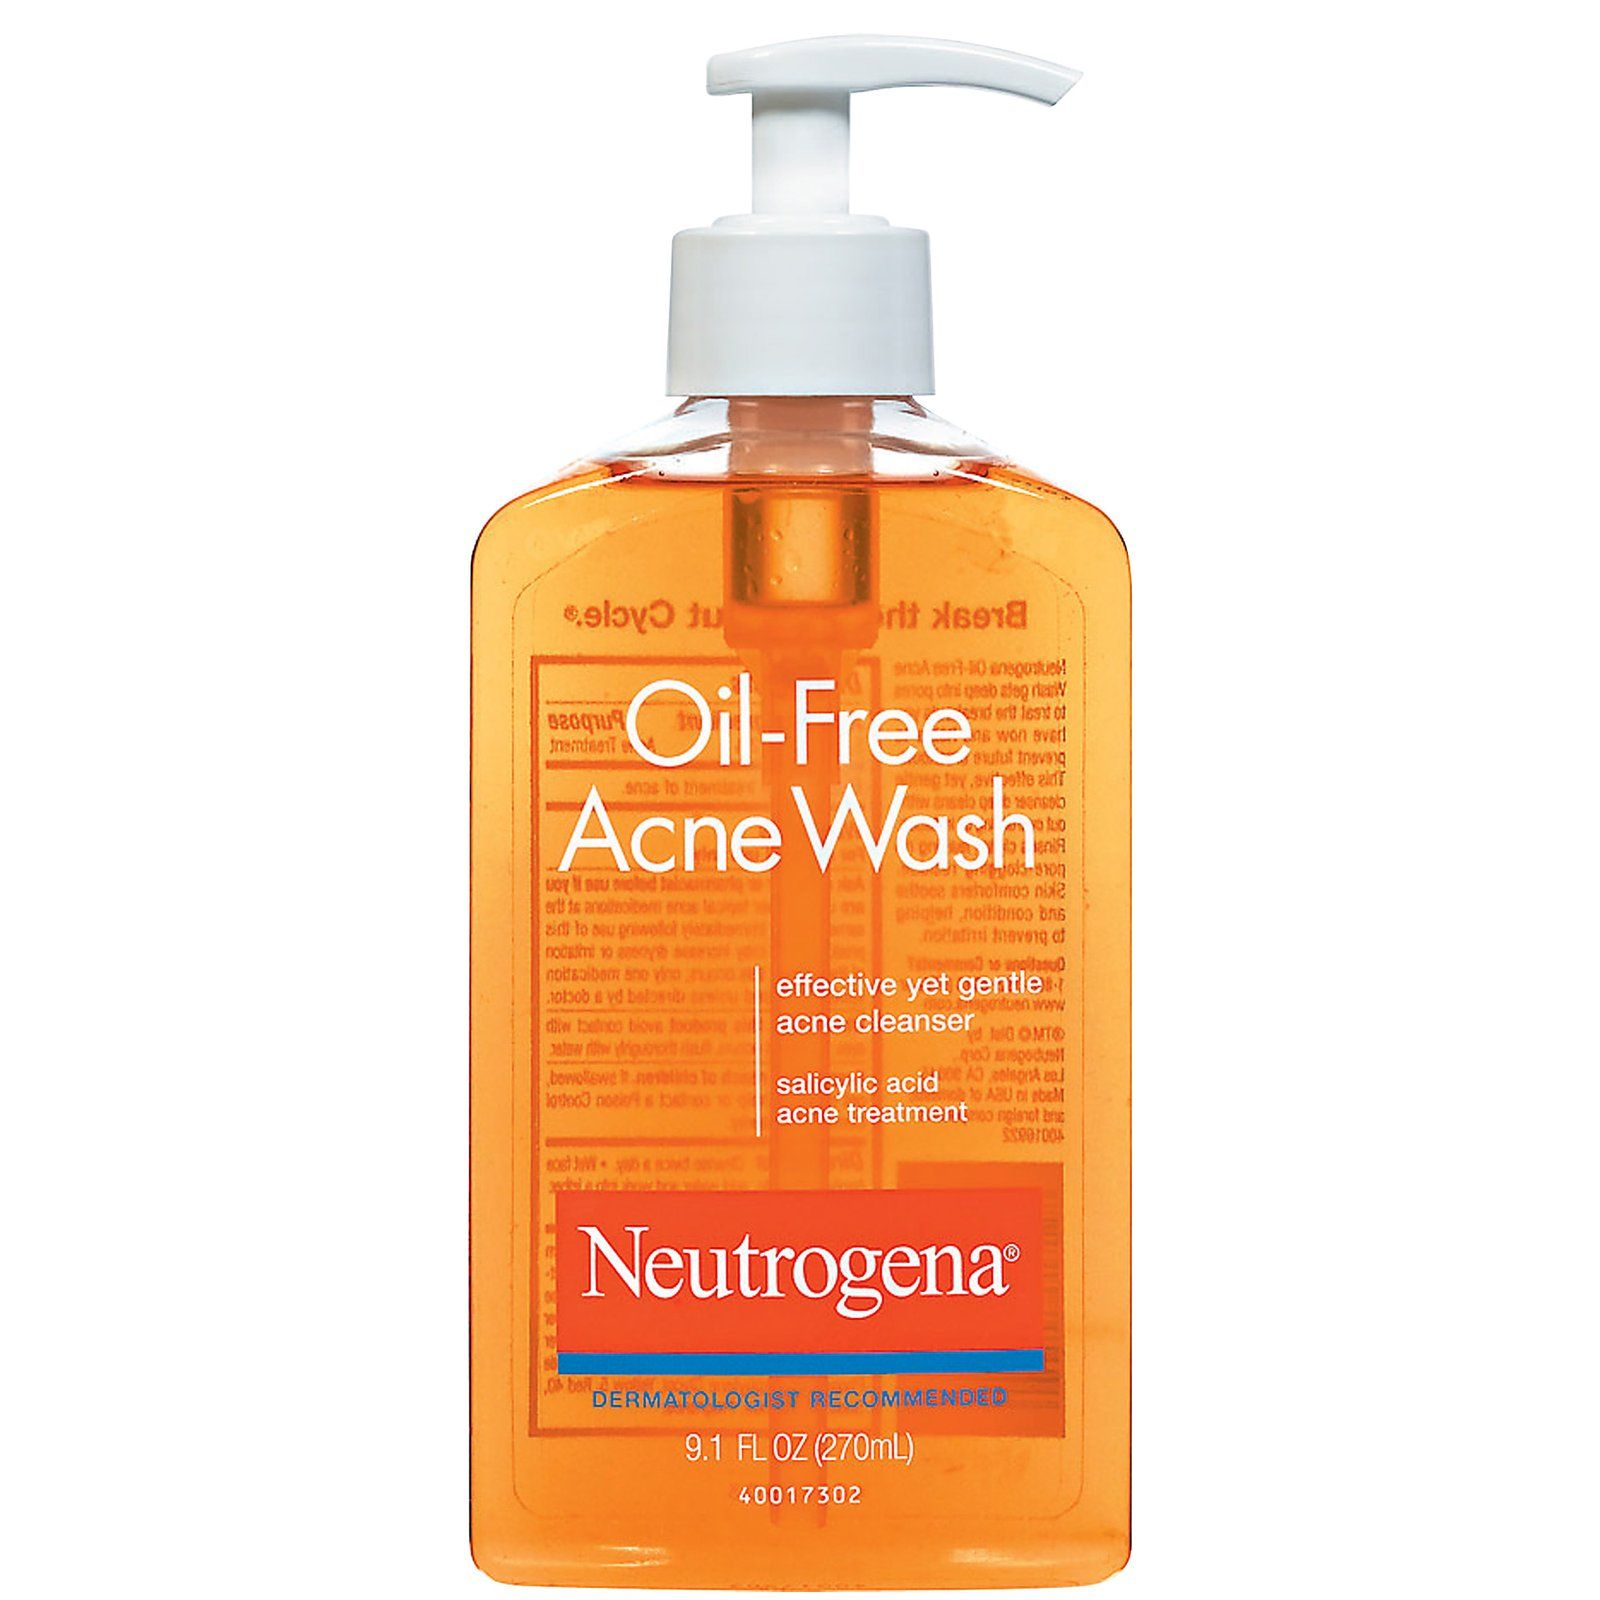 classic and effective Oil free acne wash, Acne wash